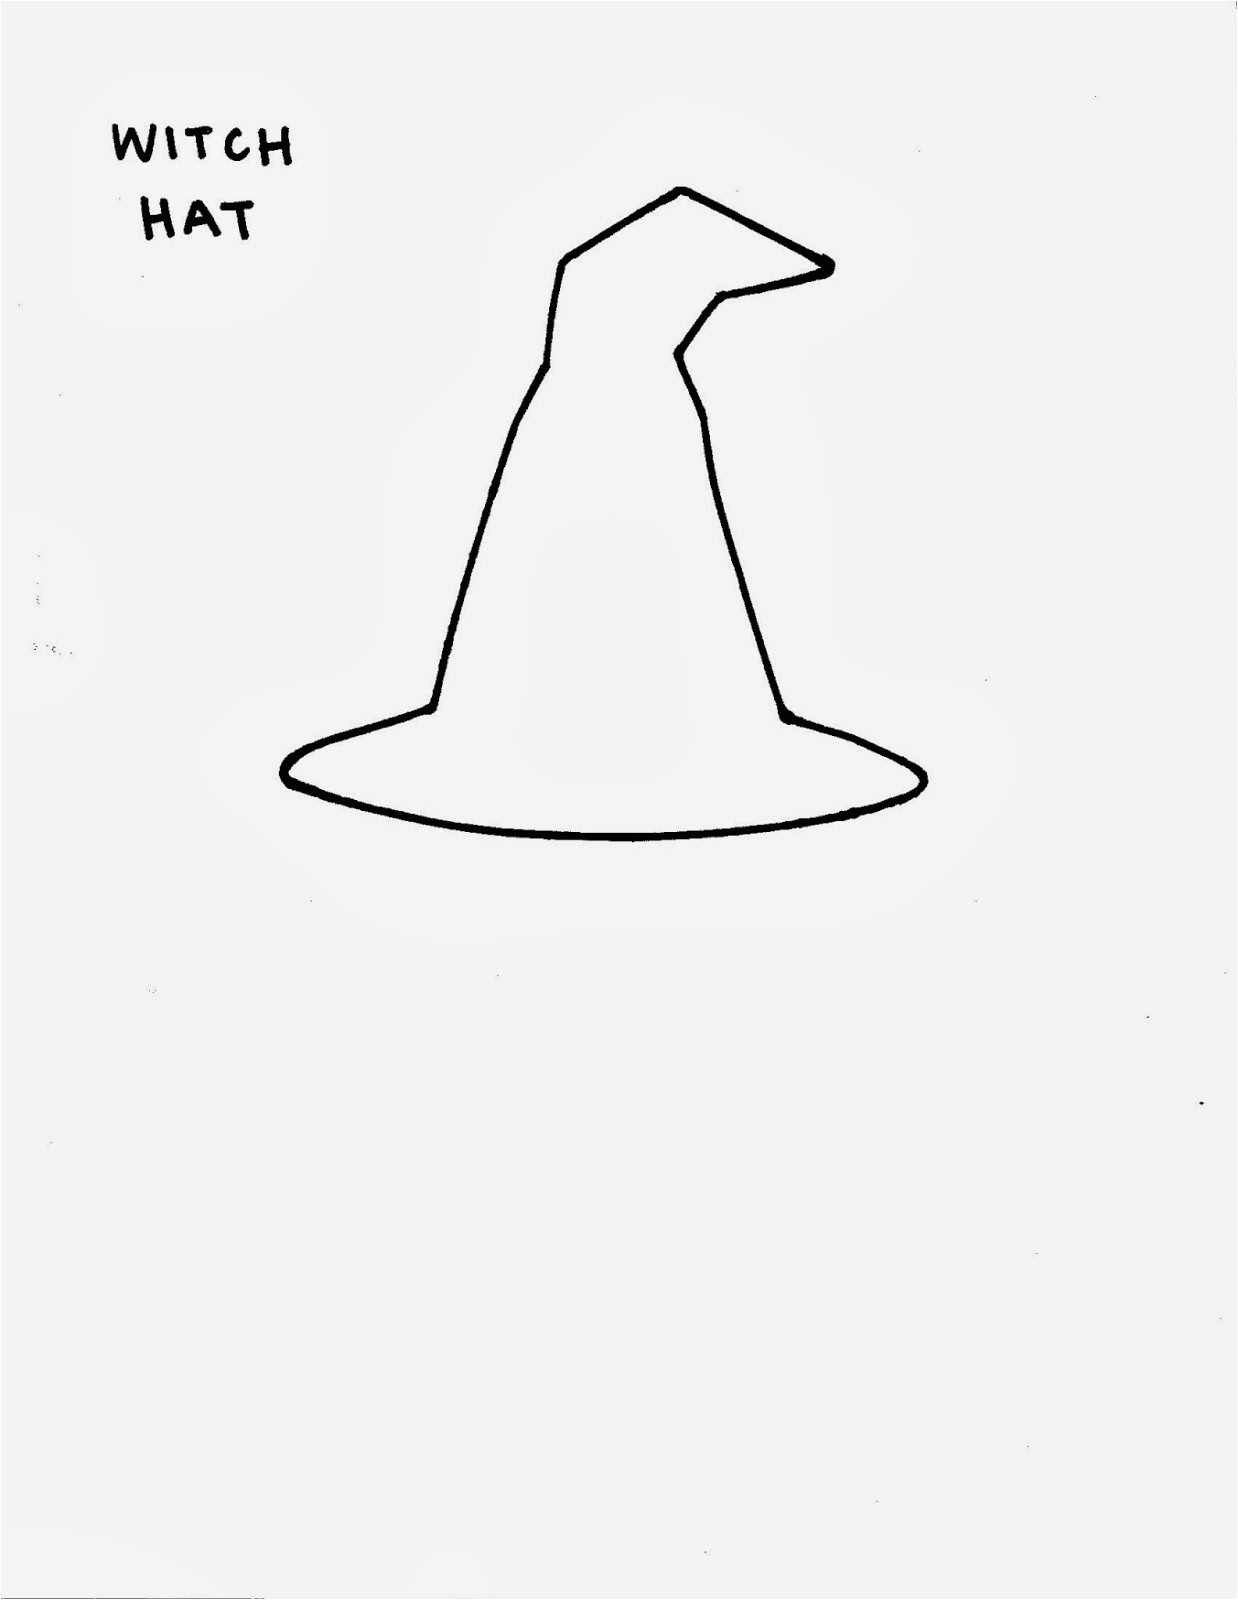 Paper Witch Hat Template Paper Halloween Display Witches Design Sprinkle